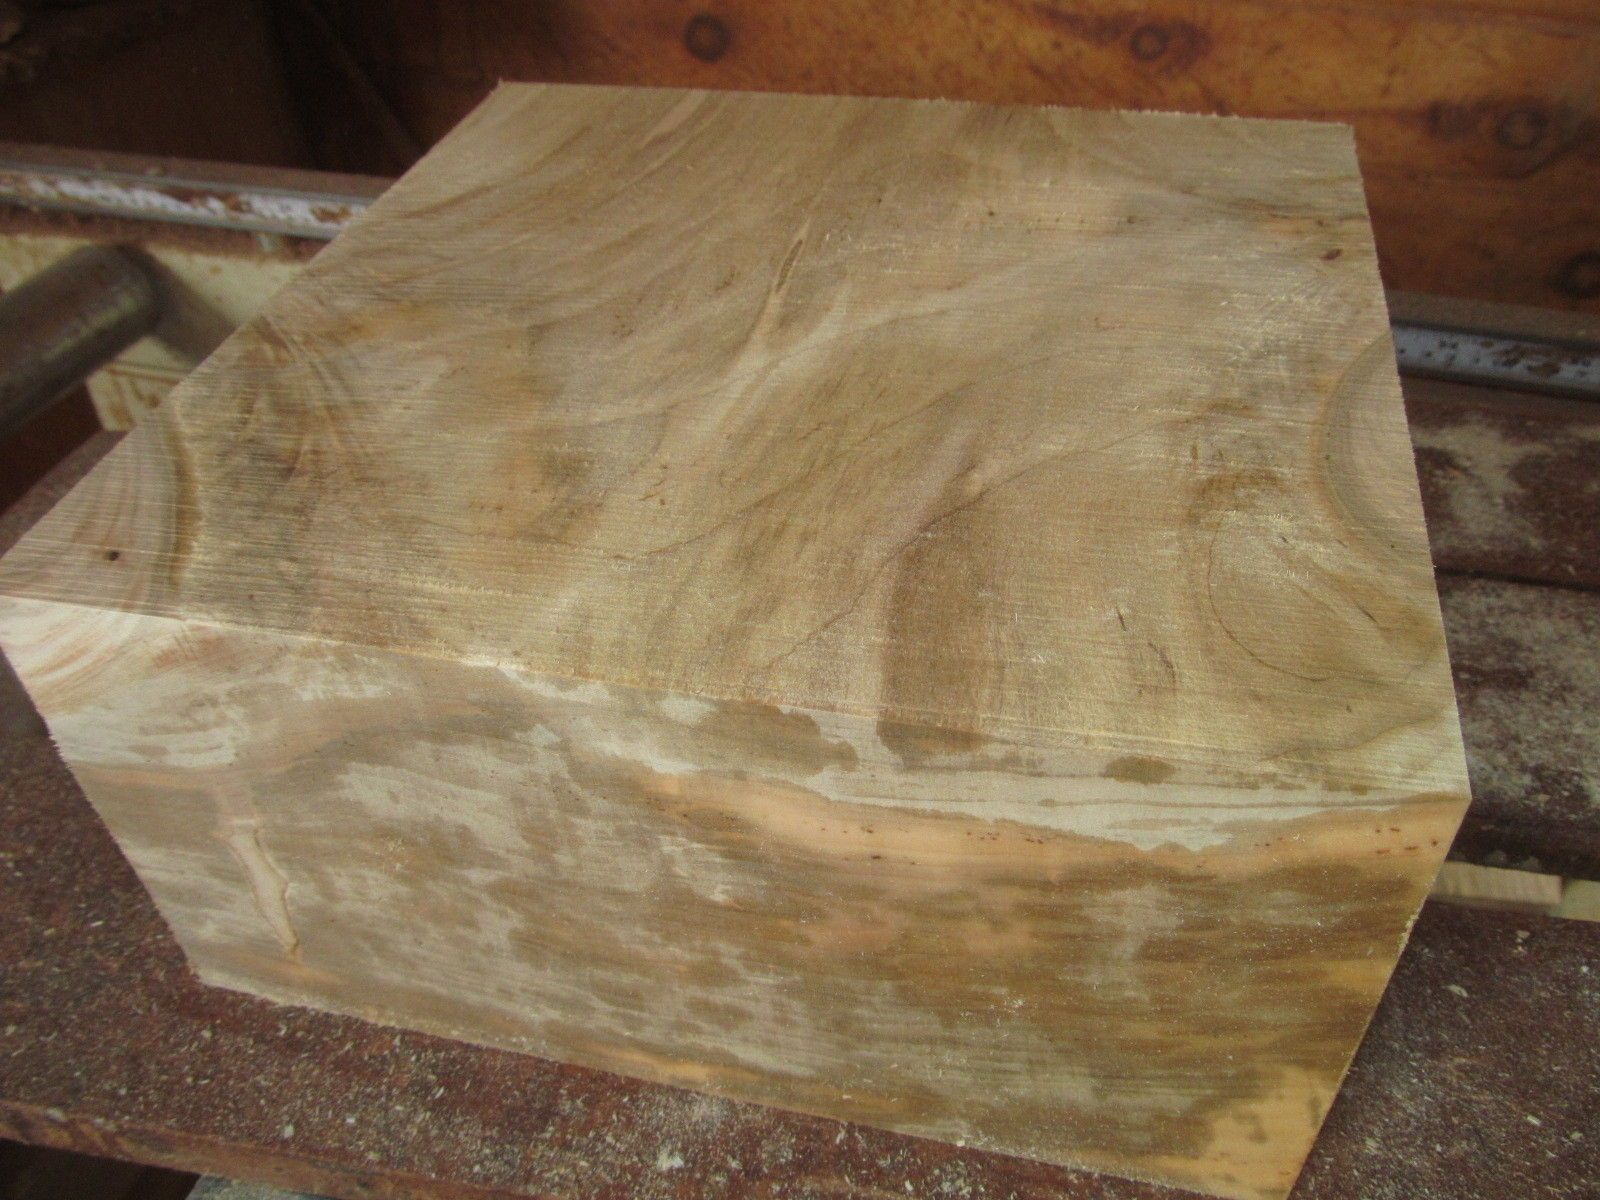 Large Curly Maple Bowl Blank Lumber Lathe Wood Turning 12 X 12 X 3 Ebay Wood Turning Sycamore Wood Wood